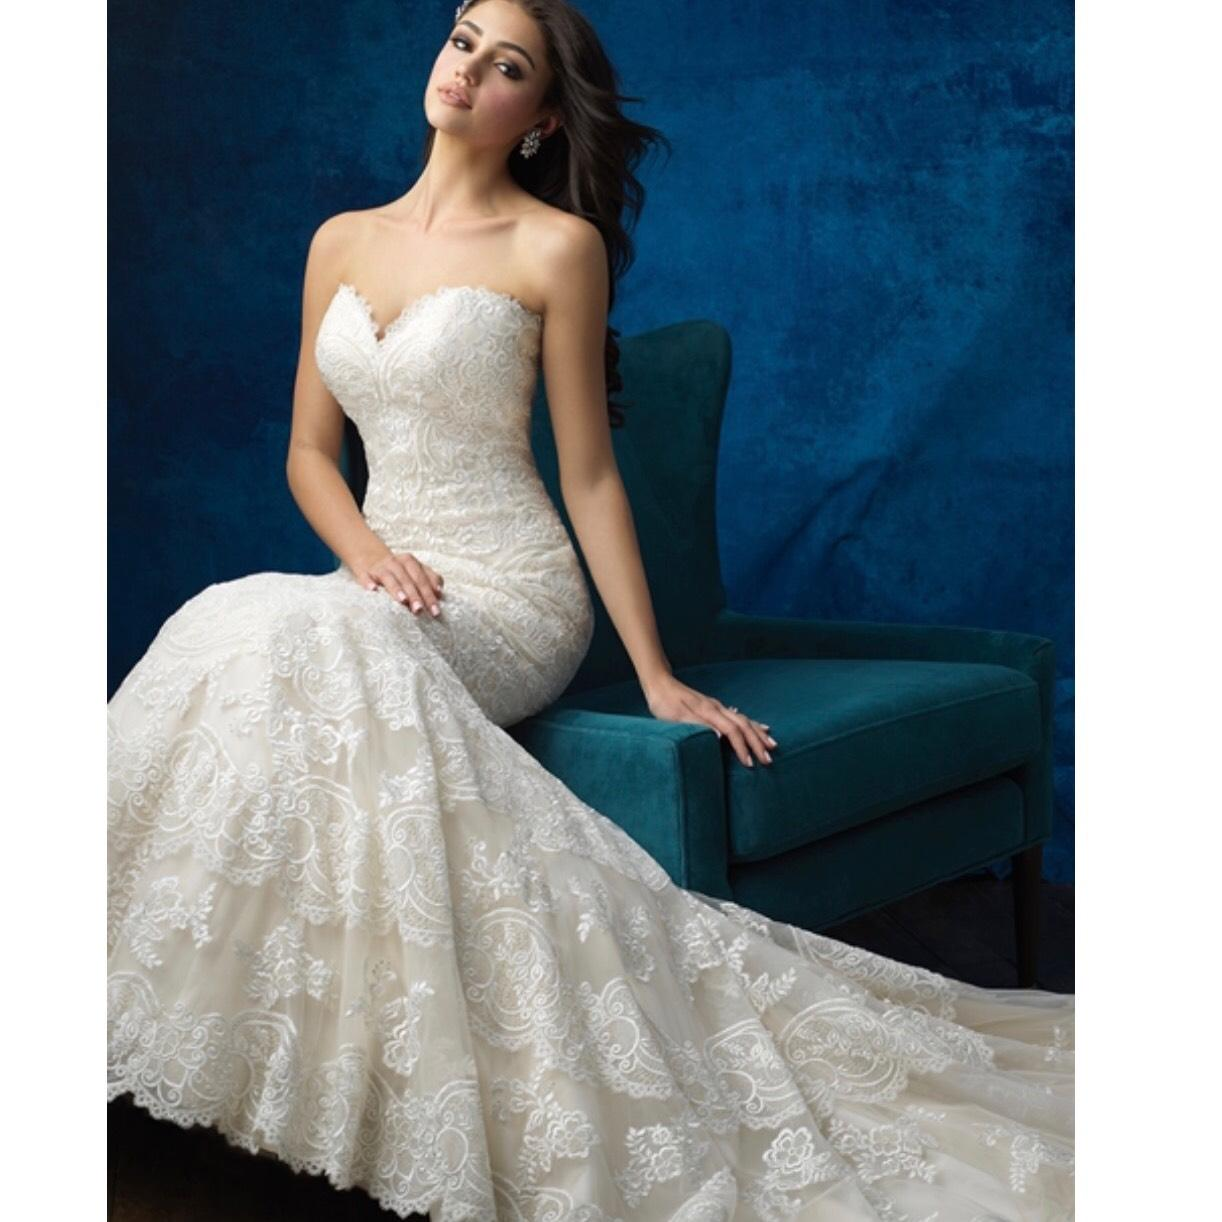 wedding dresses lexington ky bridals style 9365 wedding dress tradesy 9365